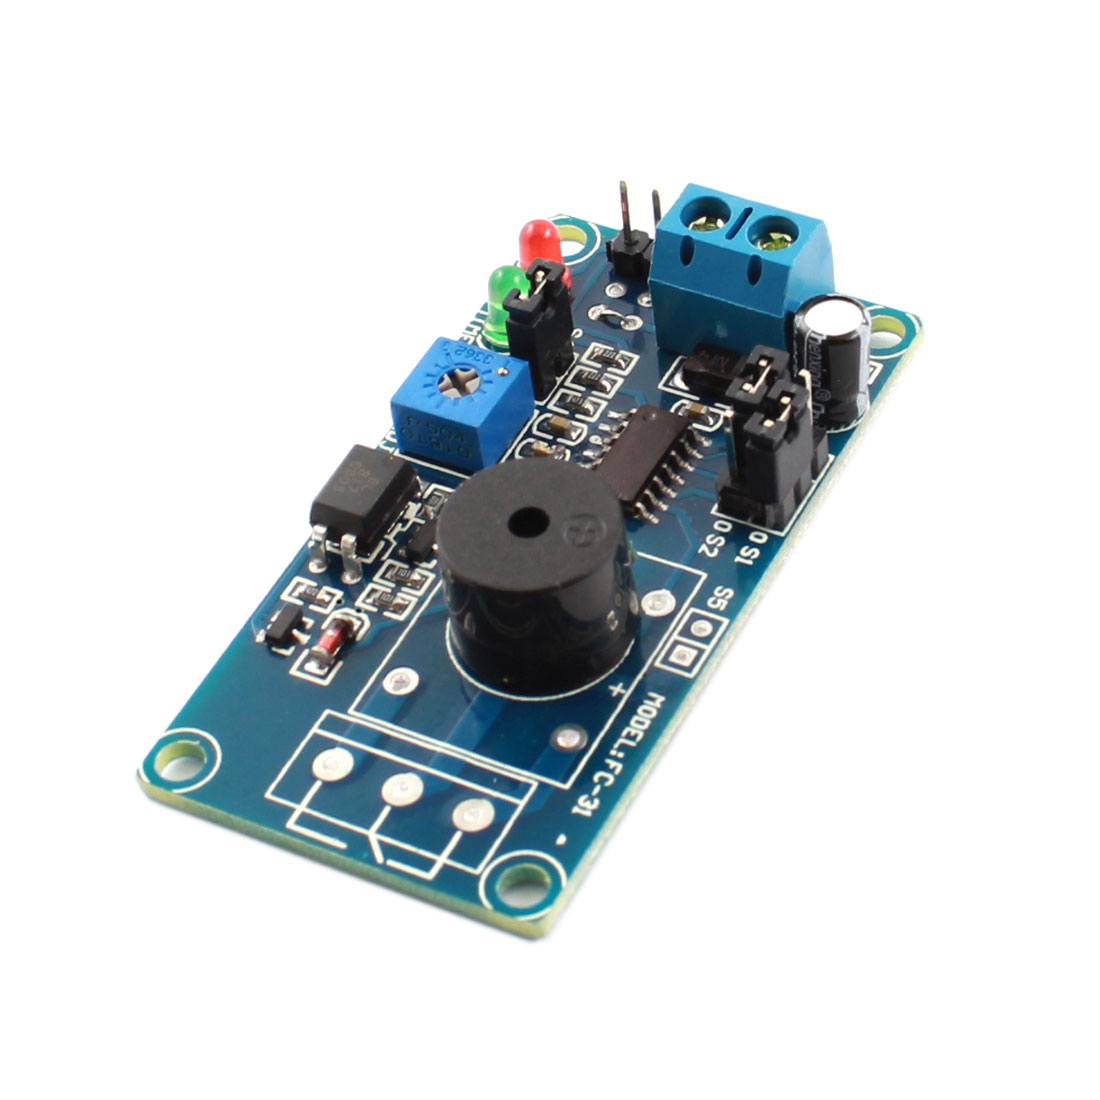 FC-31 DC 12V 85dB Normally Open Trigger Buzzer Alarm Time Delay Module PCB Circuit Board Blue